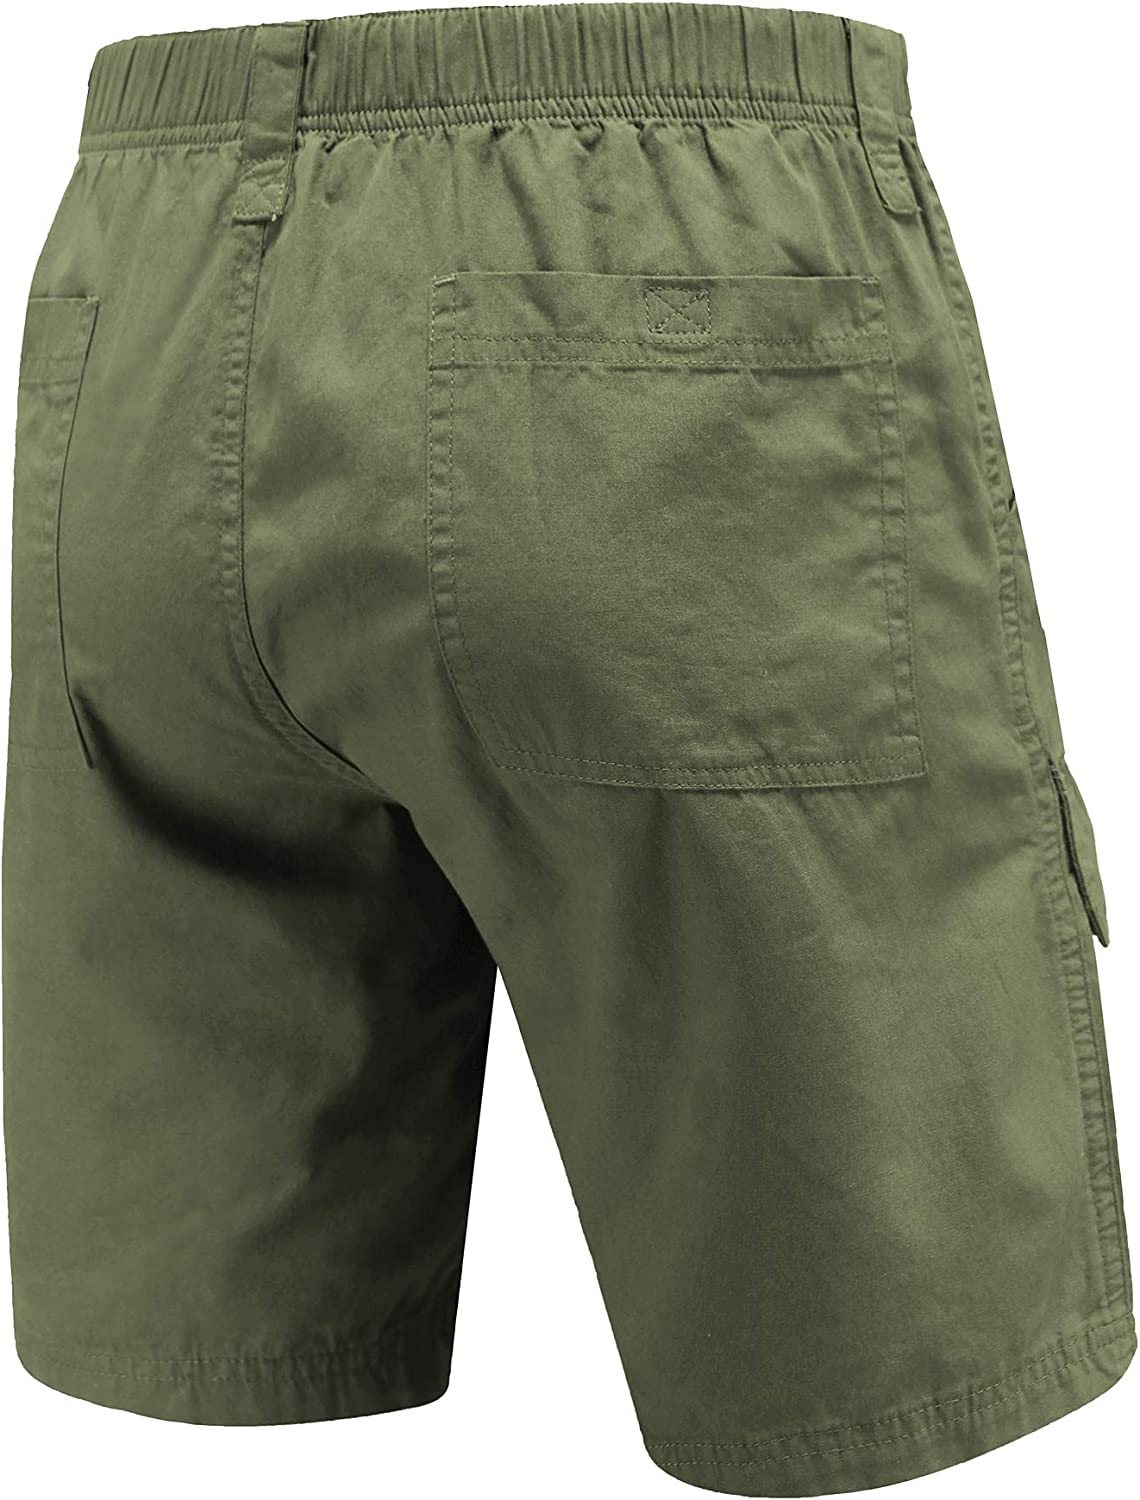 VAYAGER Mens Cargo Shorts 100/% Cotton Lightweight Multi Pocket Casual Outdoor Hiking Shorts